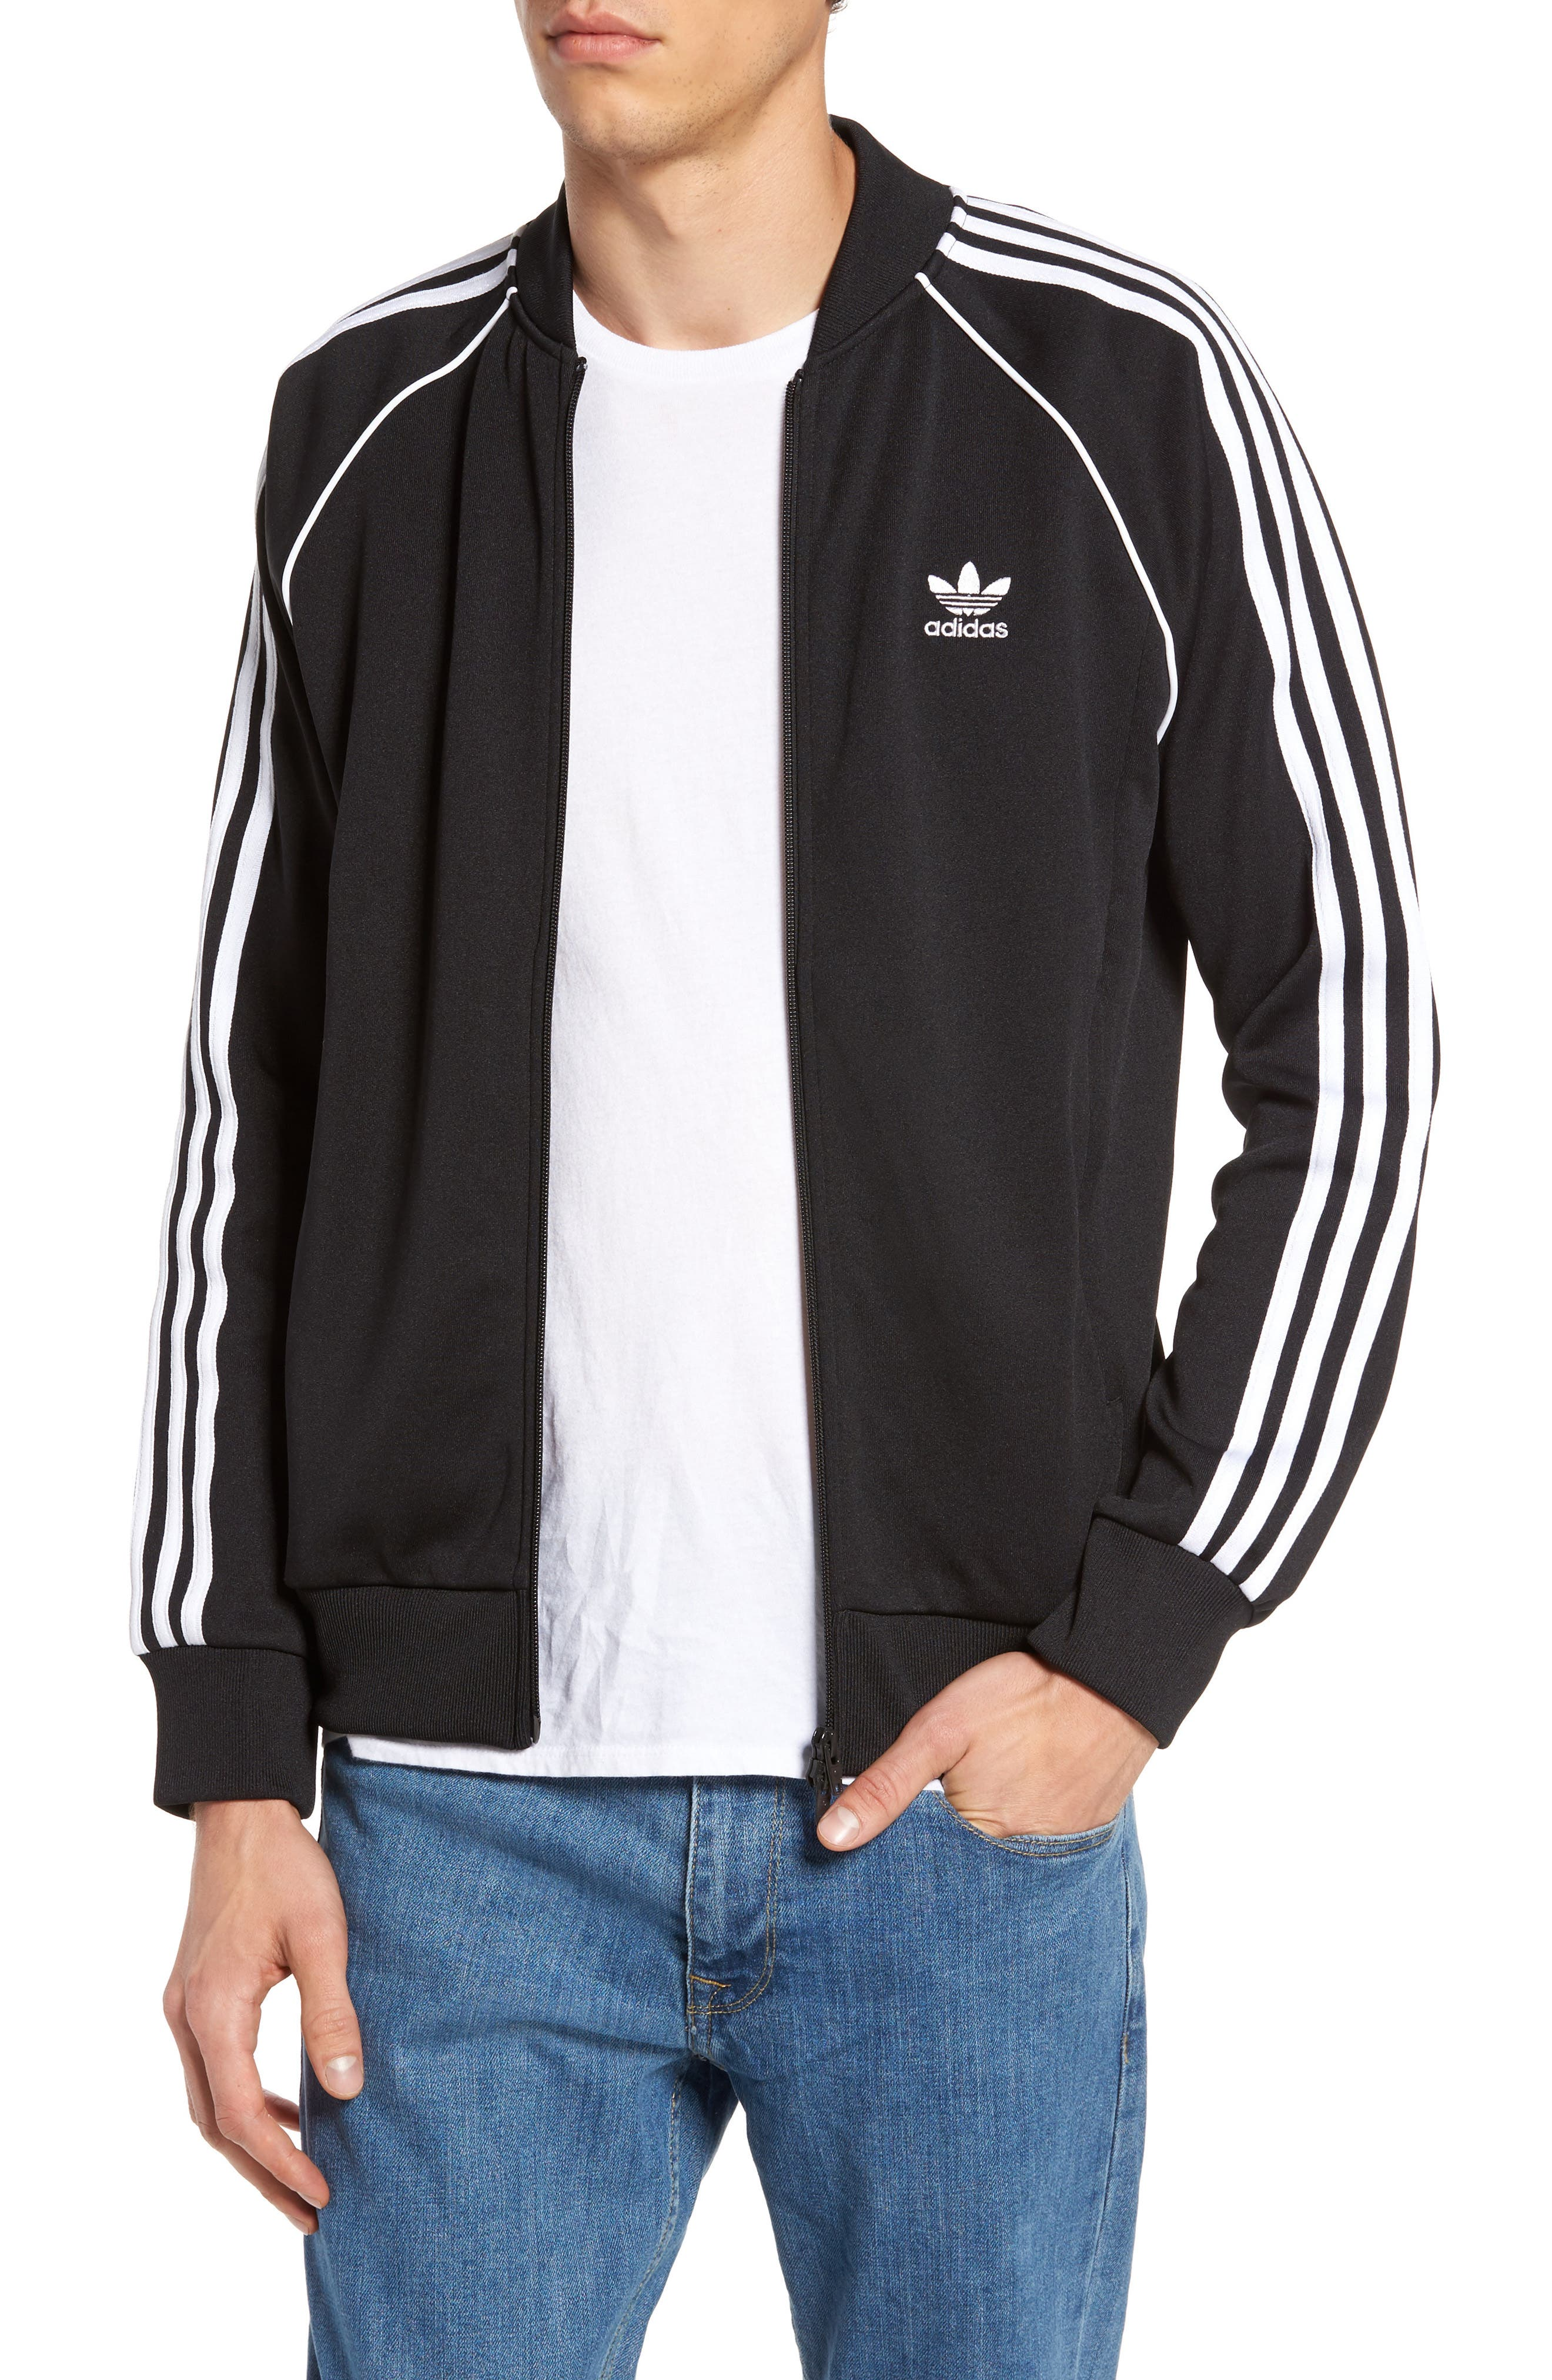 SST Track Jacket,                         Main,                         color, BLACK